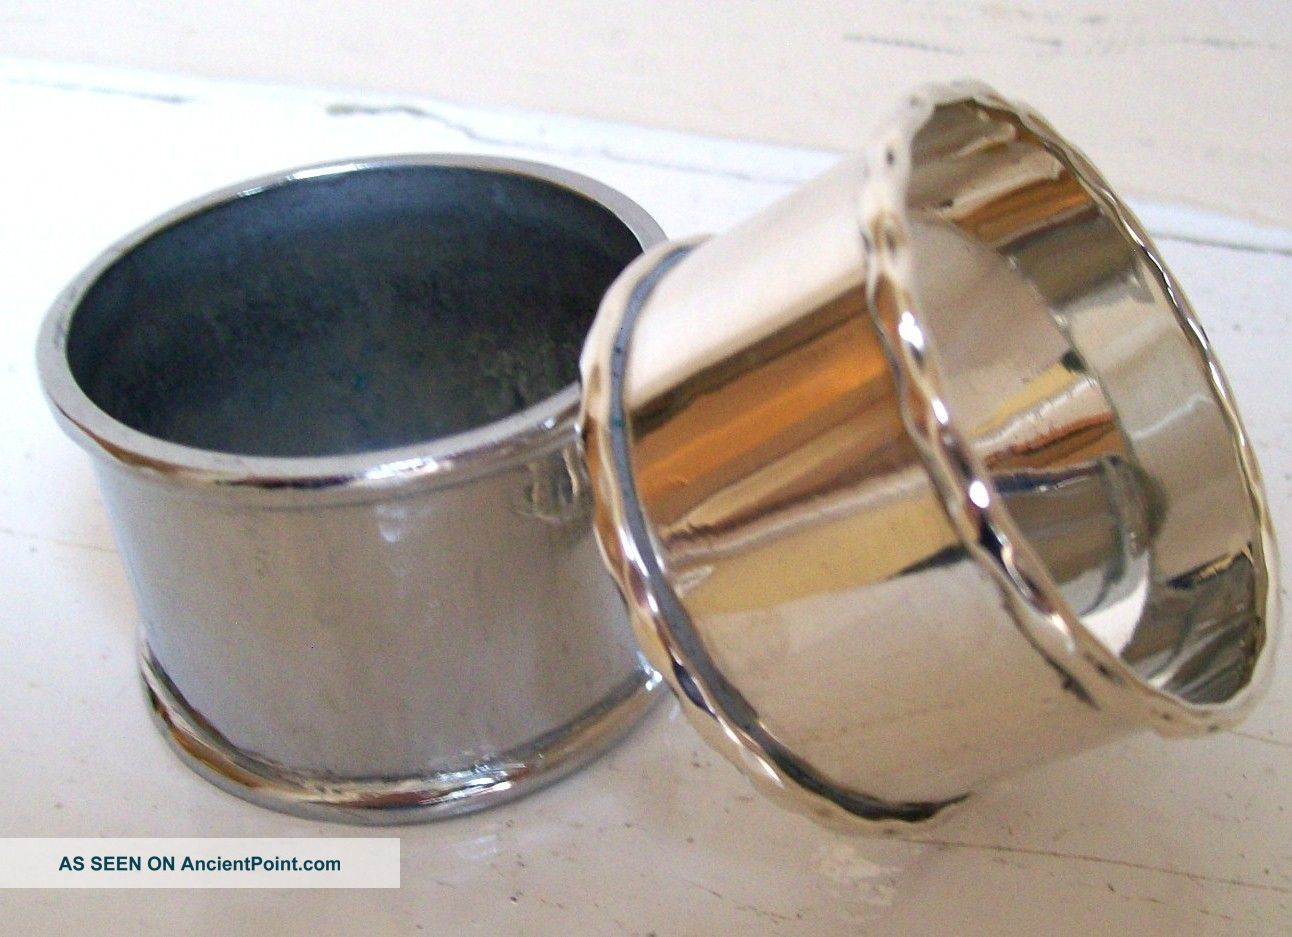 One Silver Plated Napkin/serviette Ring+one White Metal Napkin/serviette Ring Napkin Rings & Clips photo